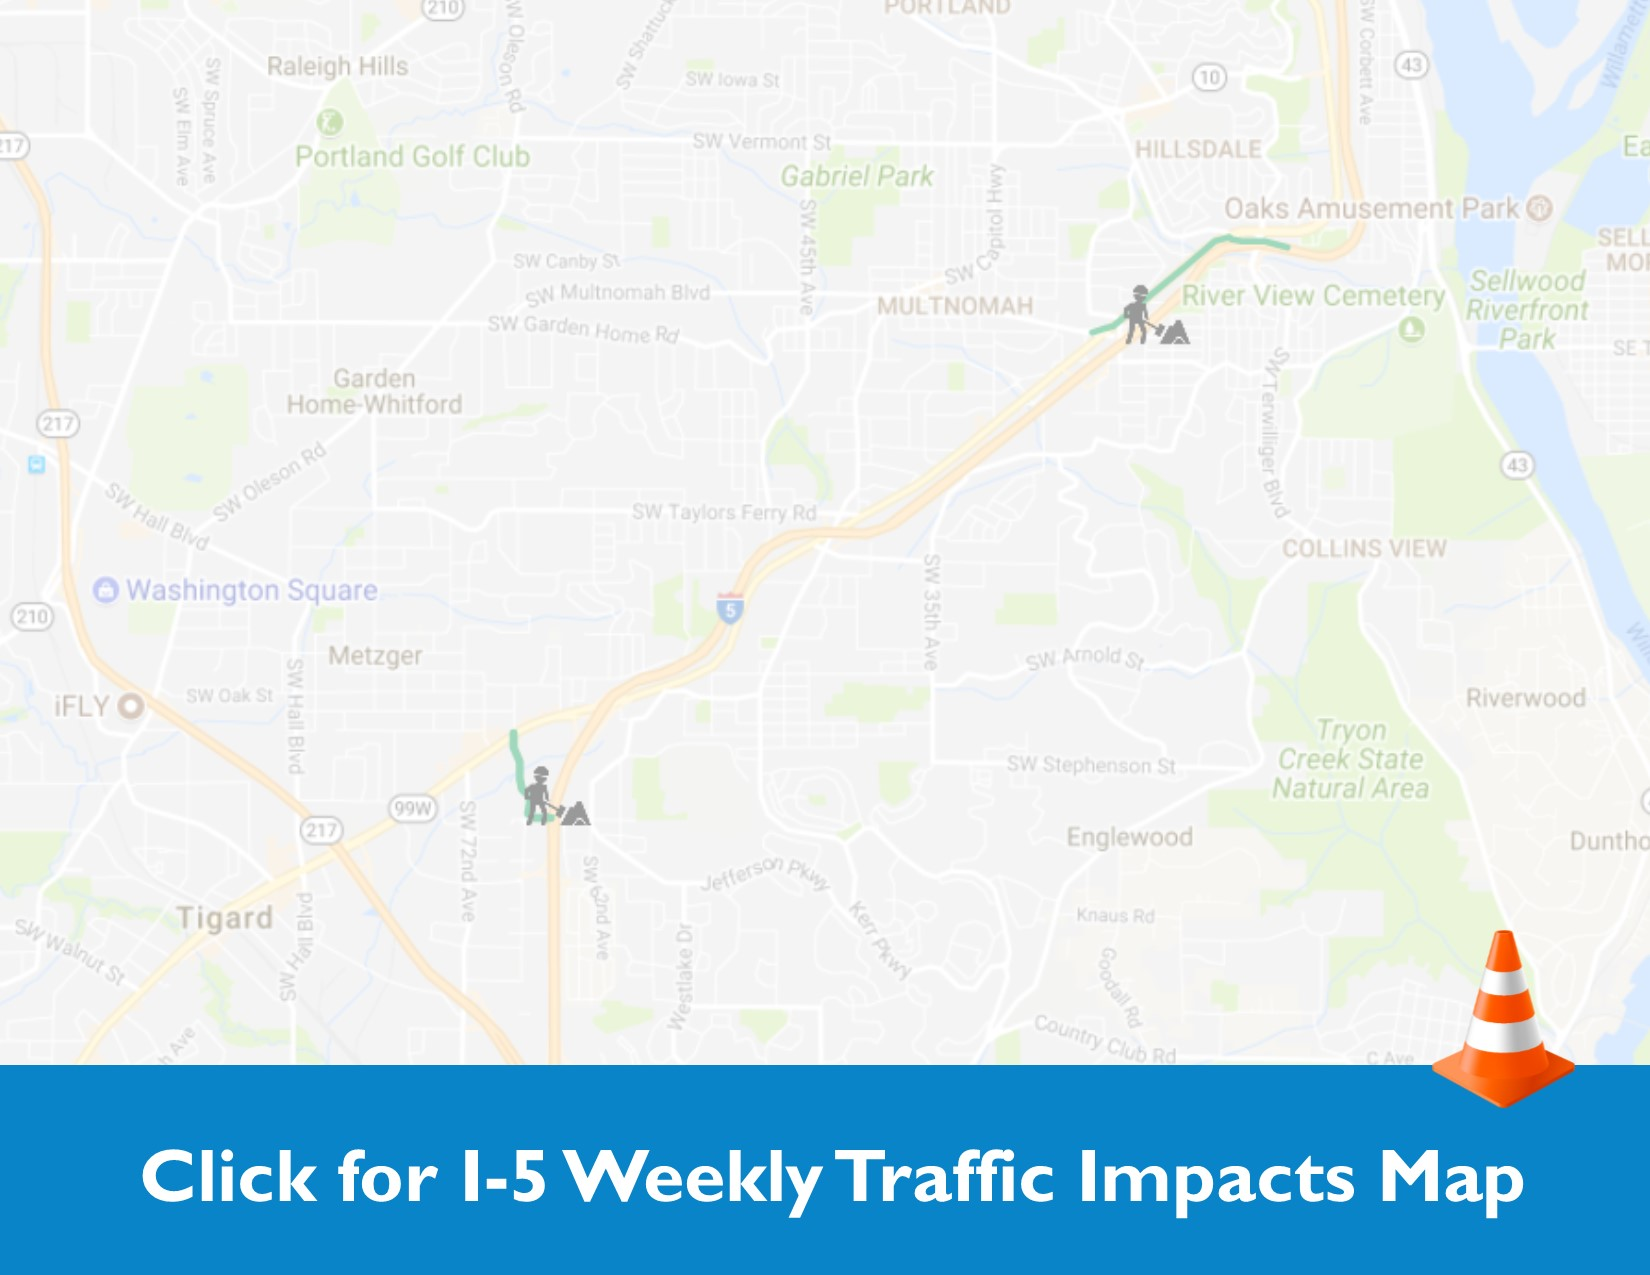 This is an interactive map showing the project area on I-5 and the weekly traffic impacts due to construction.